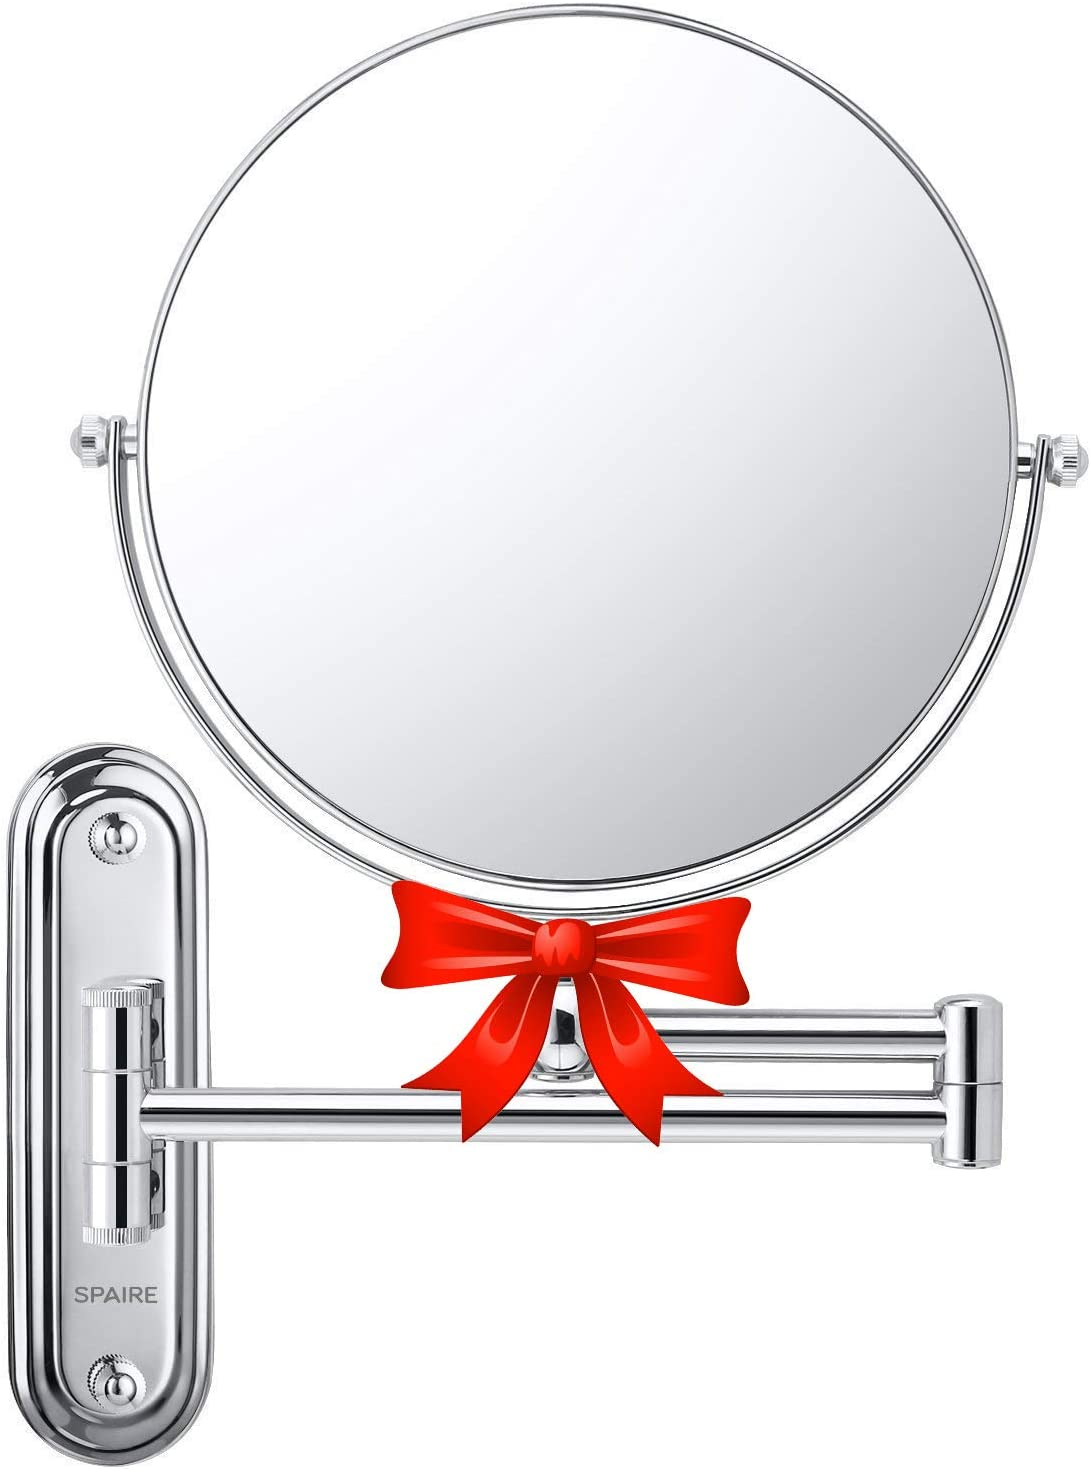 Spaire 7X Non-Lighted Wall Mounted Makeup Mirror Reviews